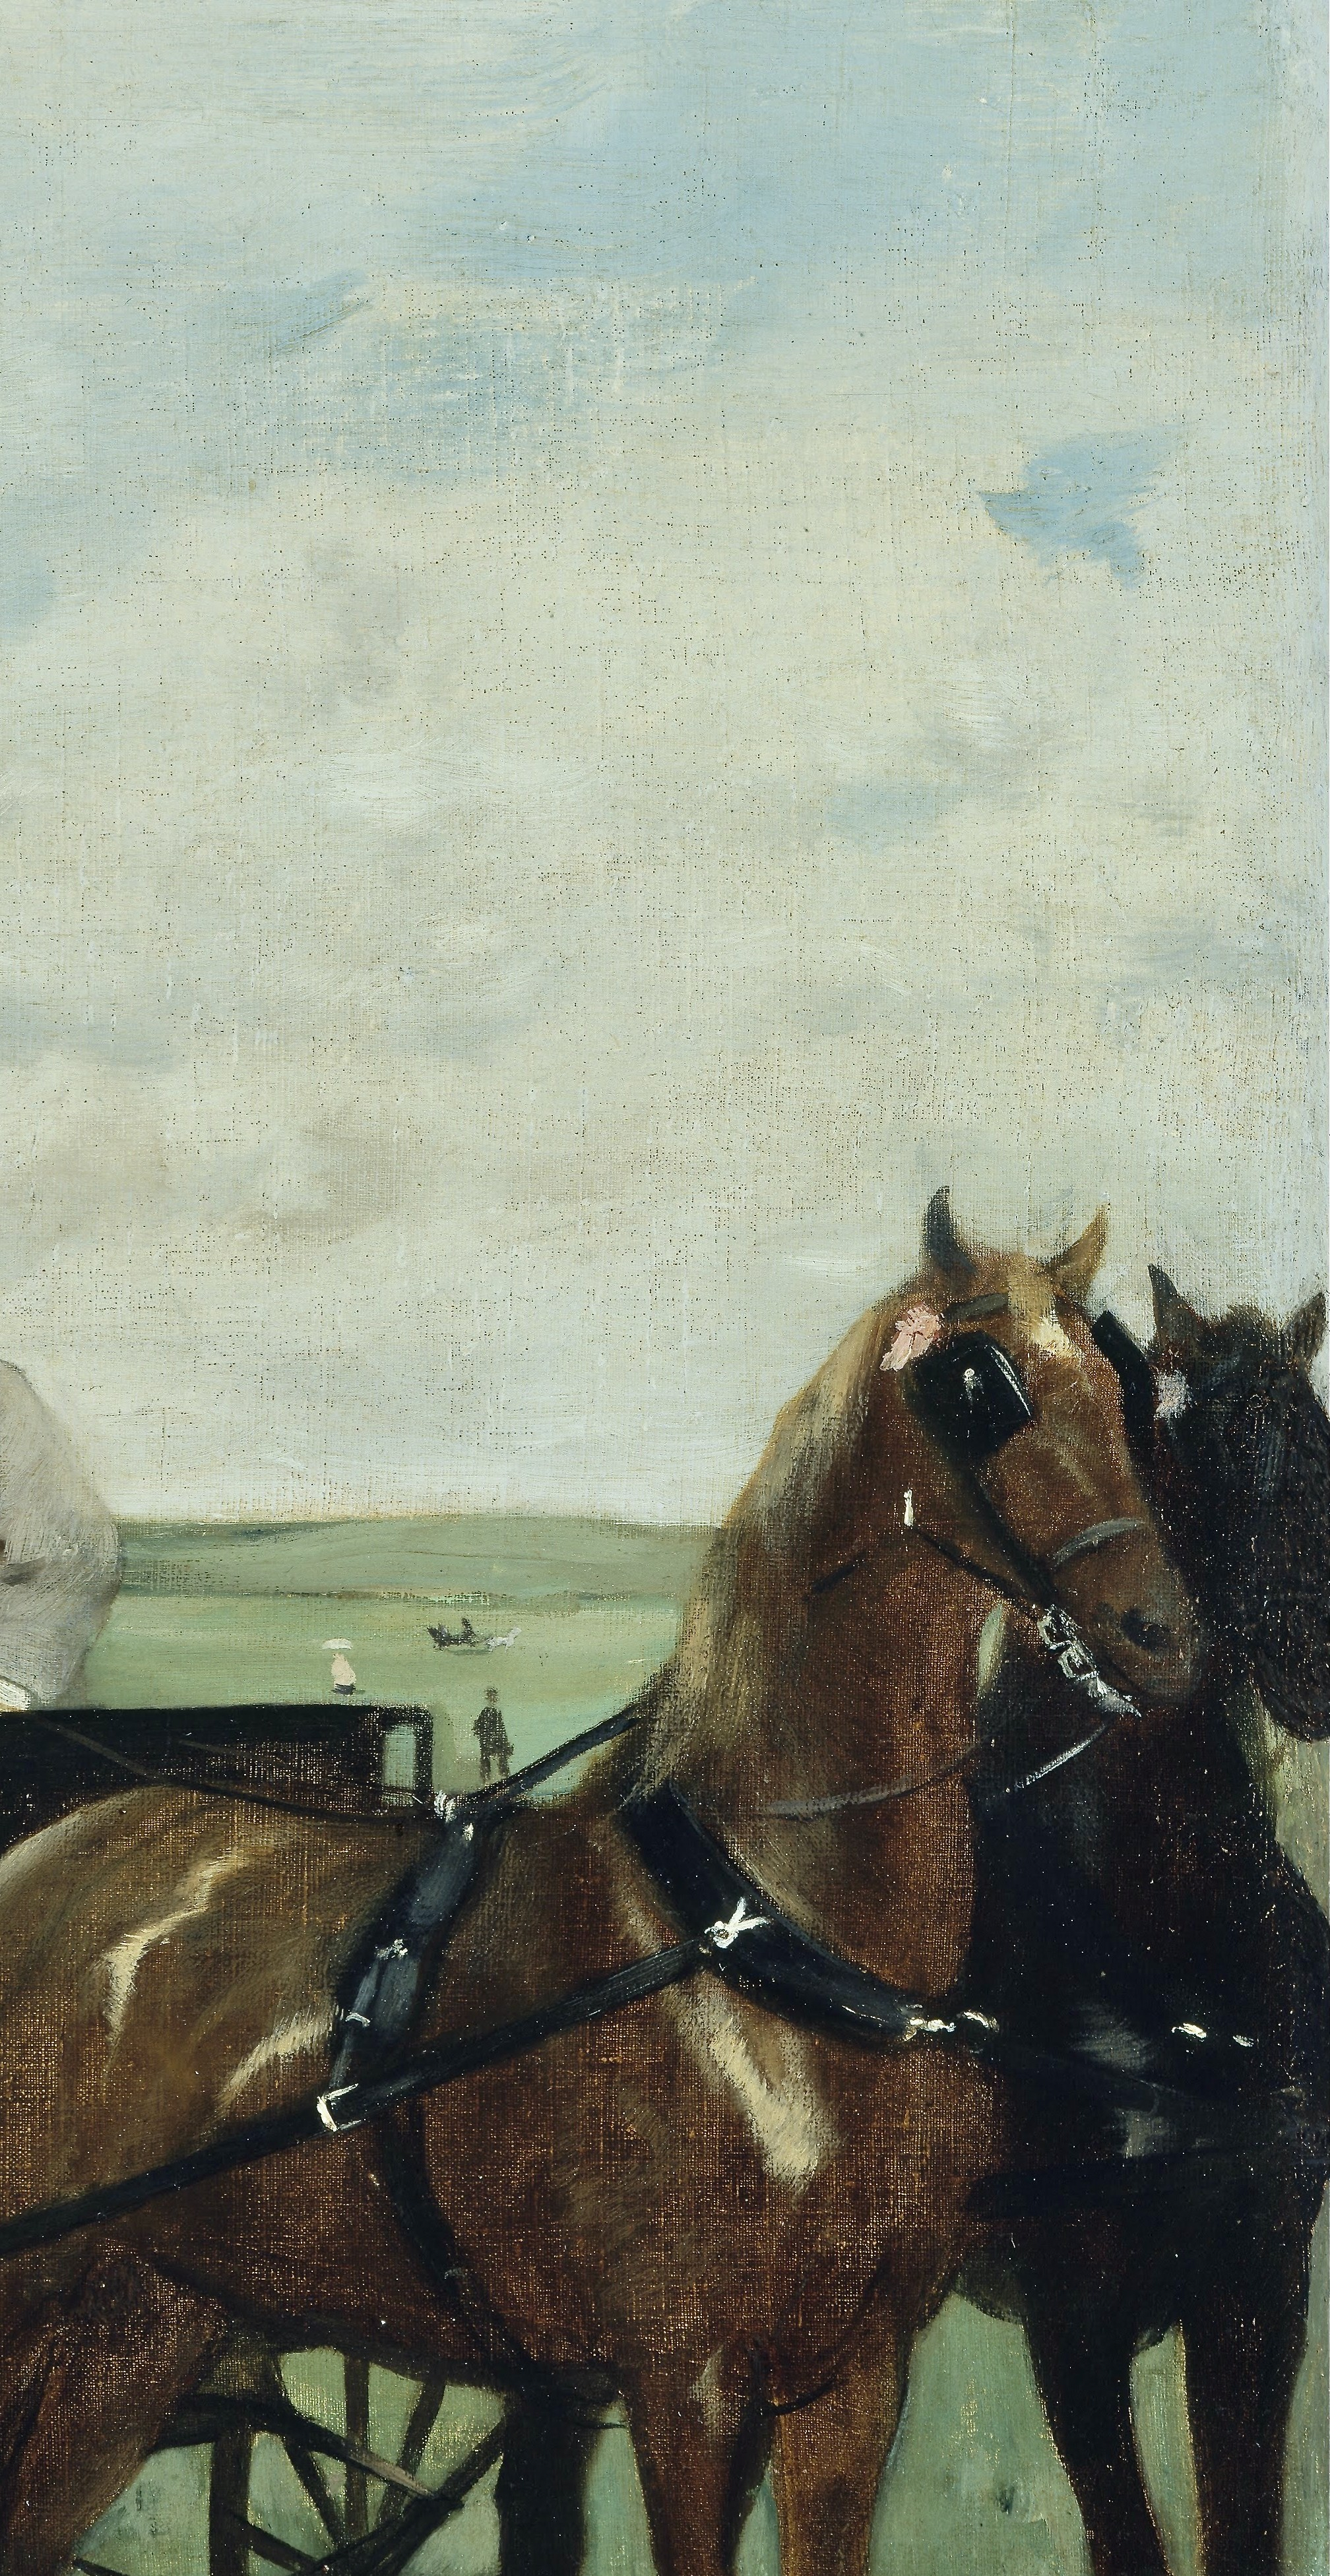 Edgar_Degas_-_At_the_Races_in_the_Countryside_-_Google_Art_Project